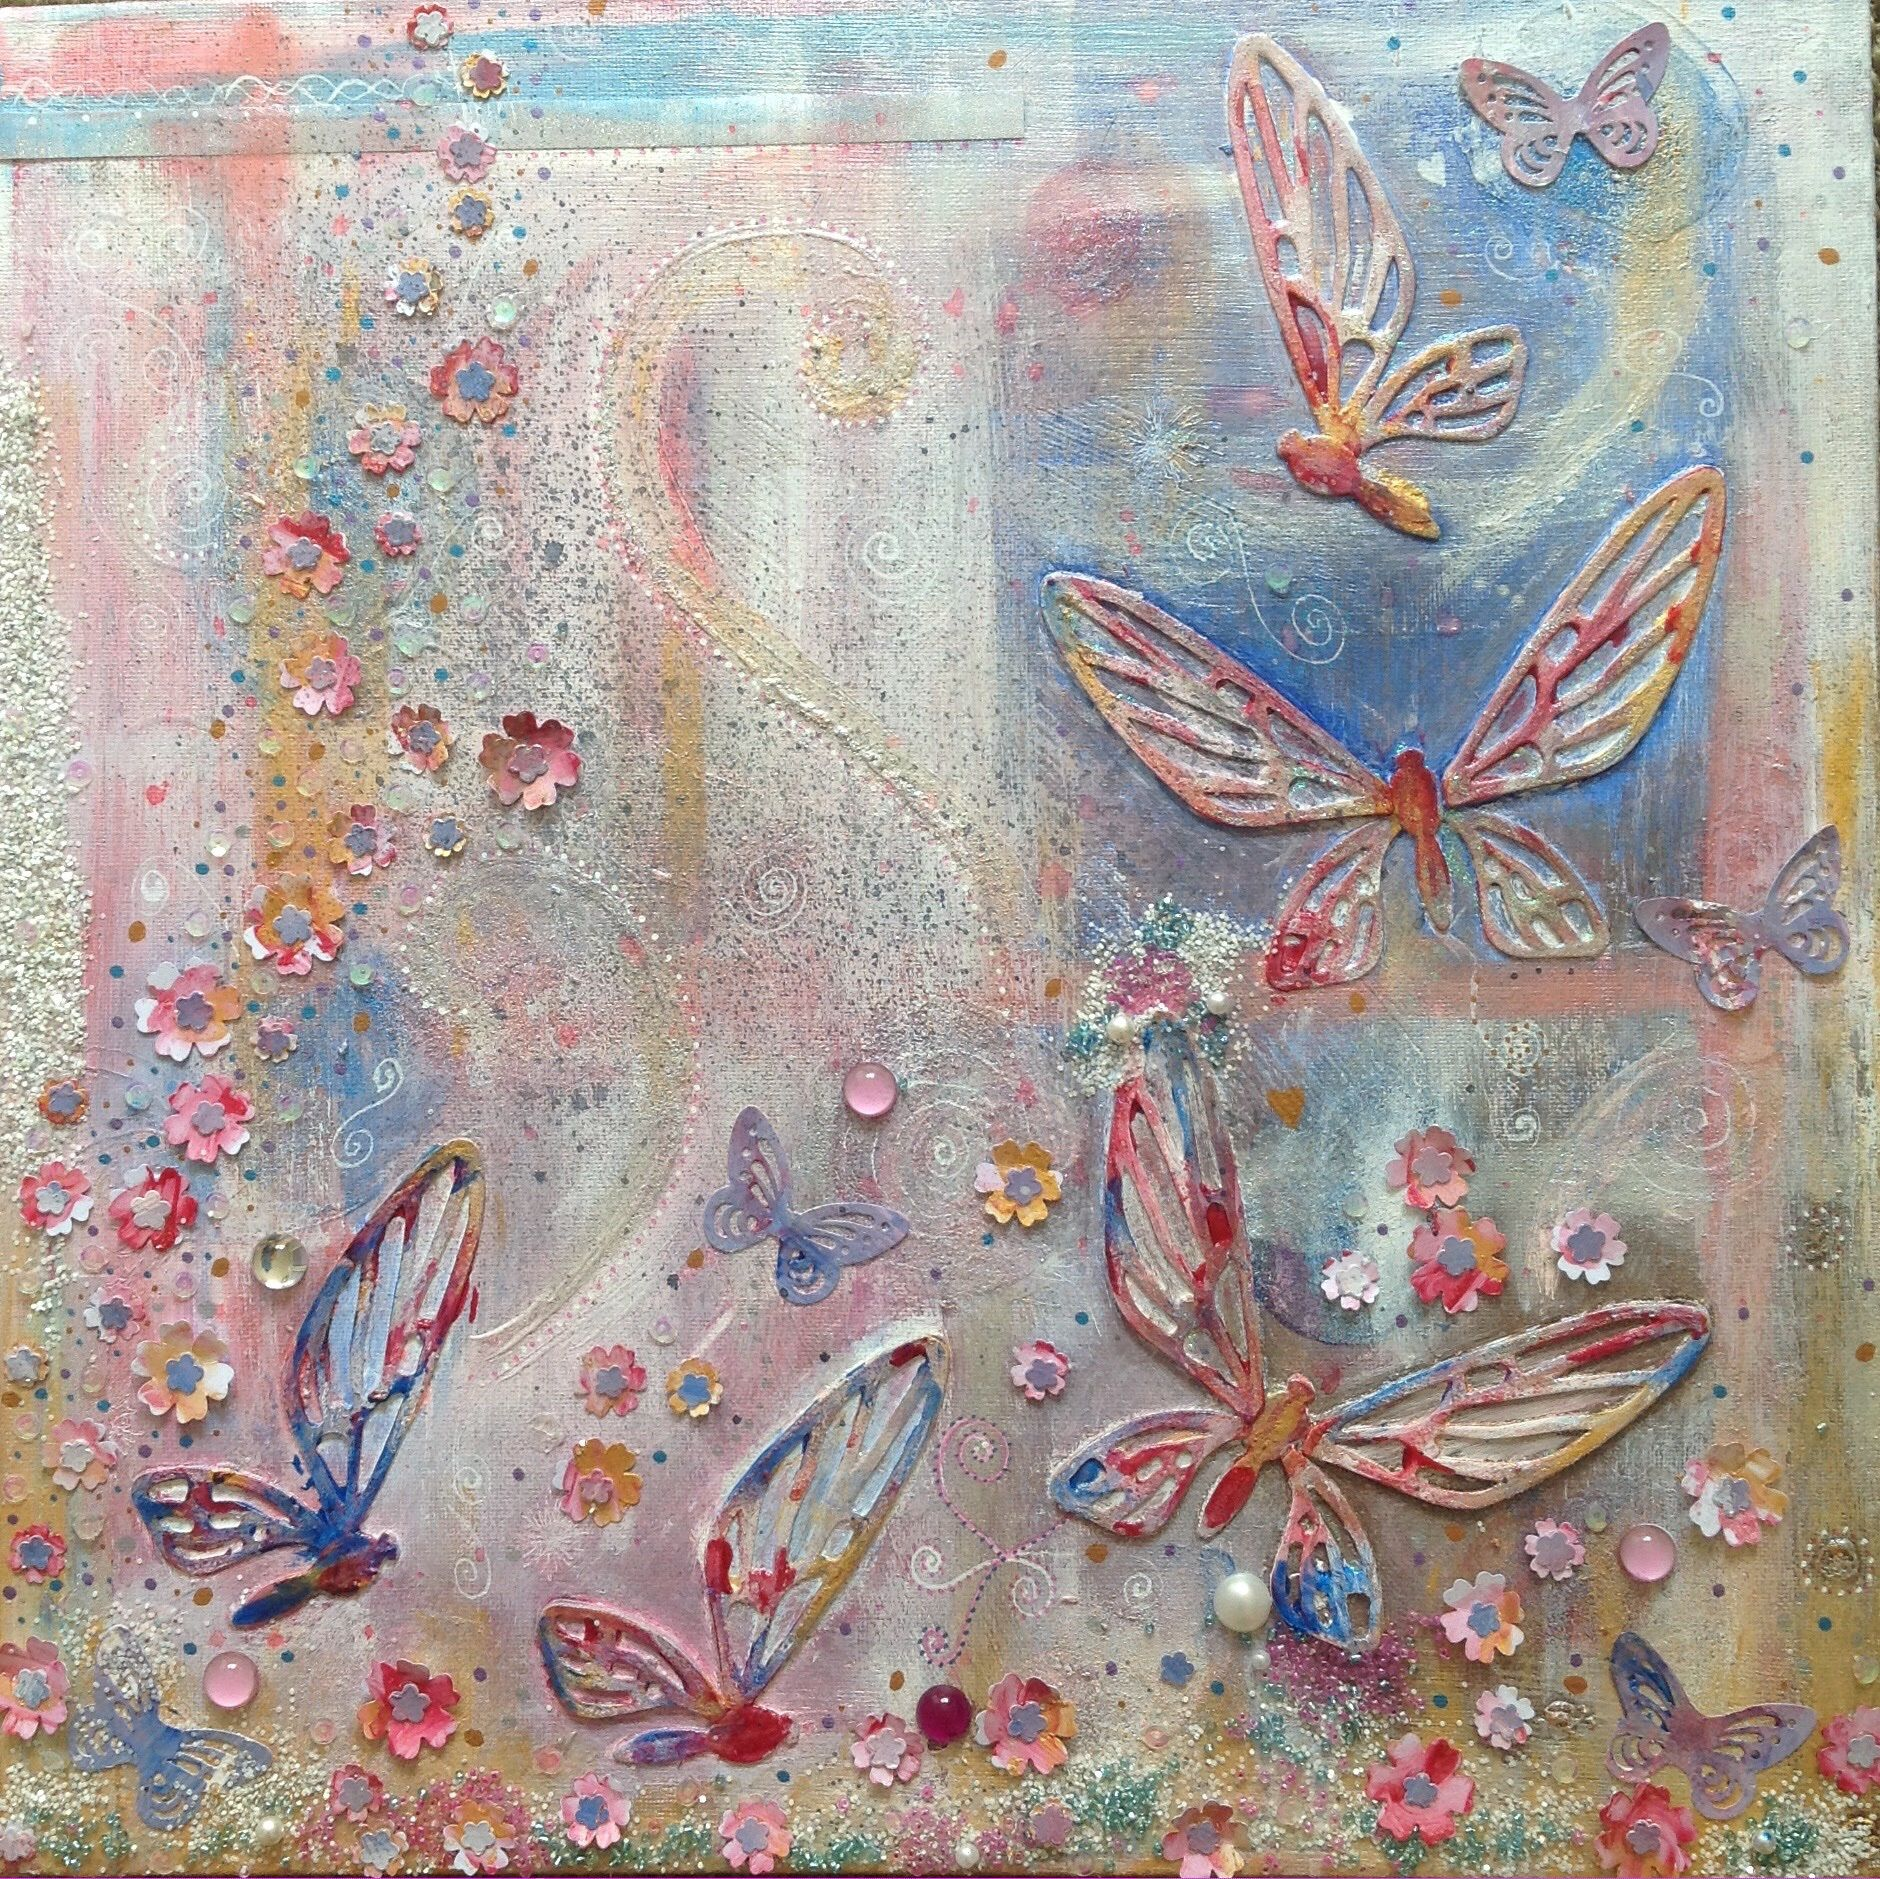 Mixed media, tim holtz die cut butterfly acrylic, wax, beads punched flowers, glass paint. For hospice wall